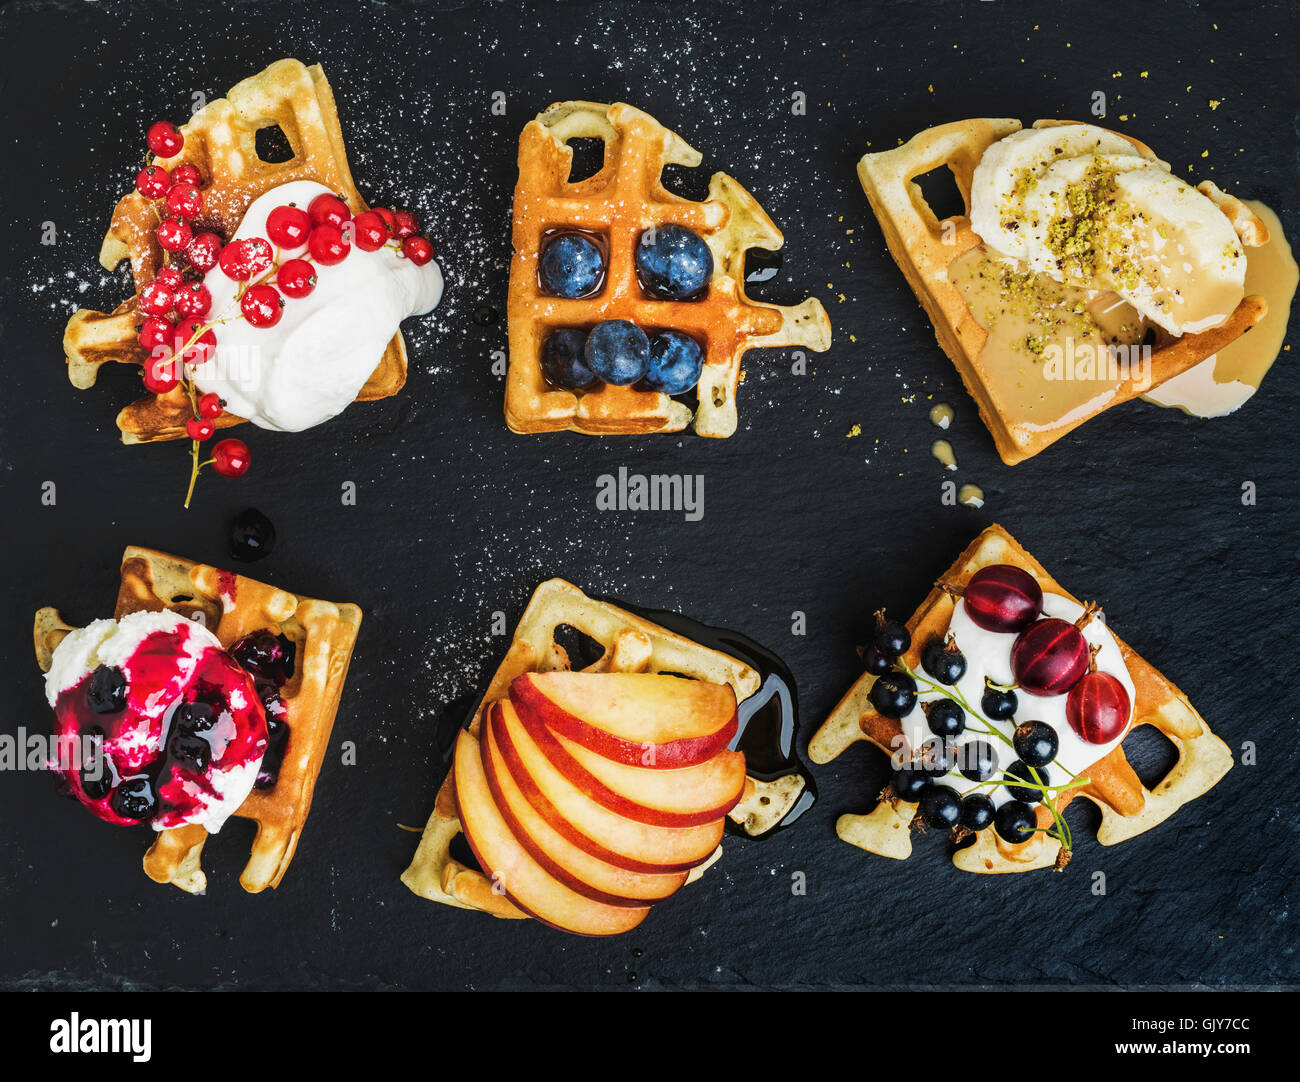 Warm belgian homemade waffles with fresh garden berries, fruit and ice cream on dark slate stone background, top - Stock Image